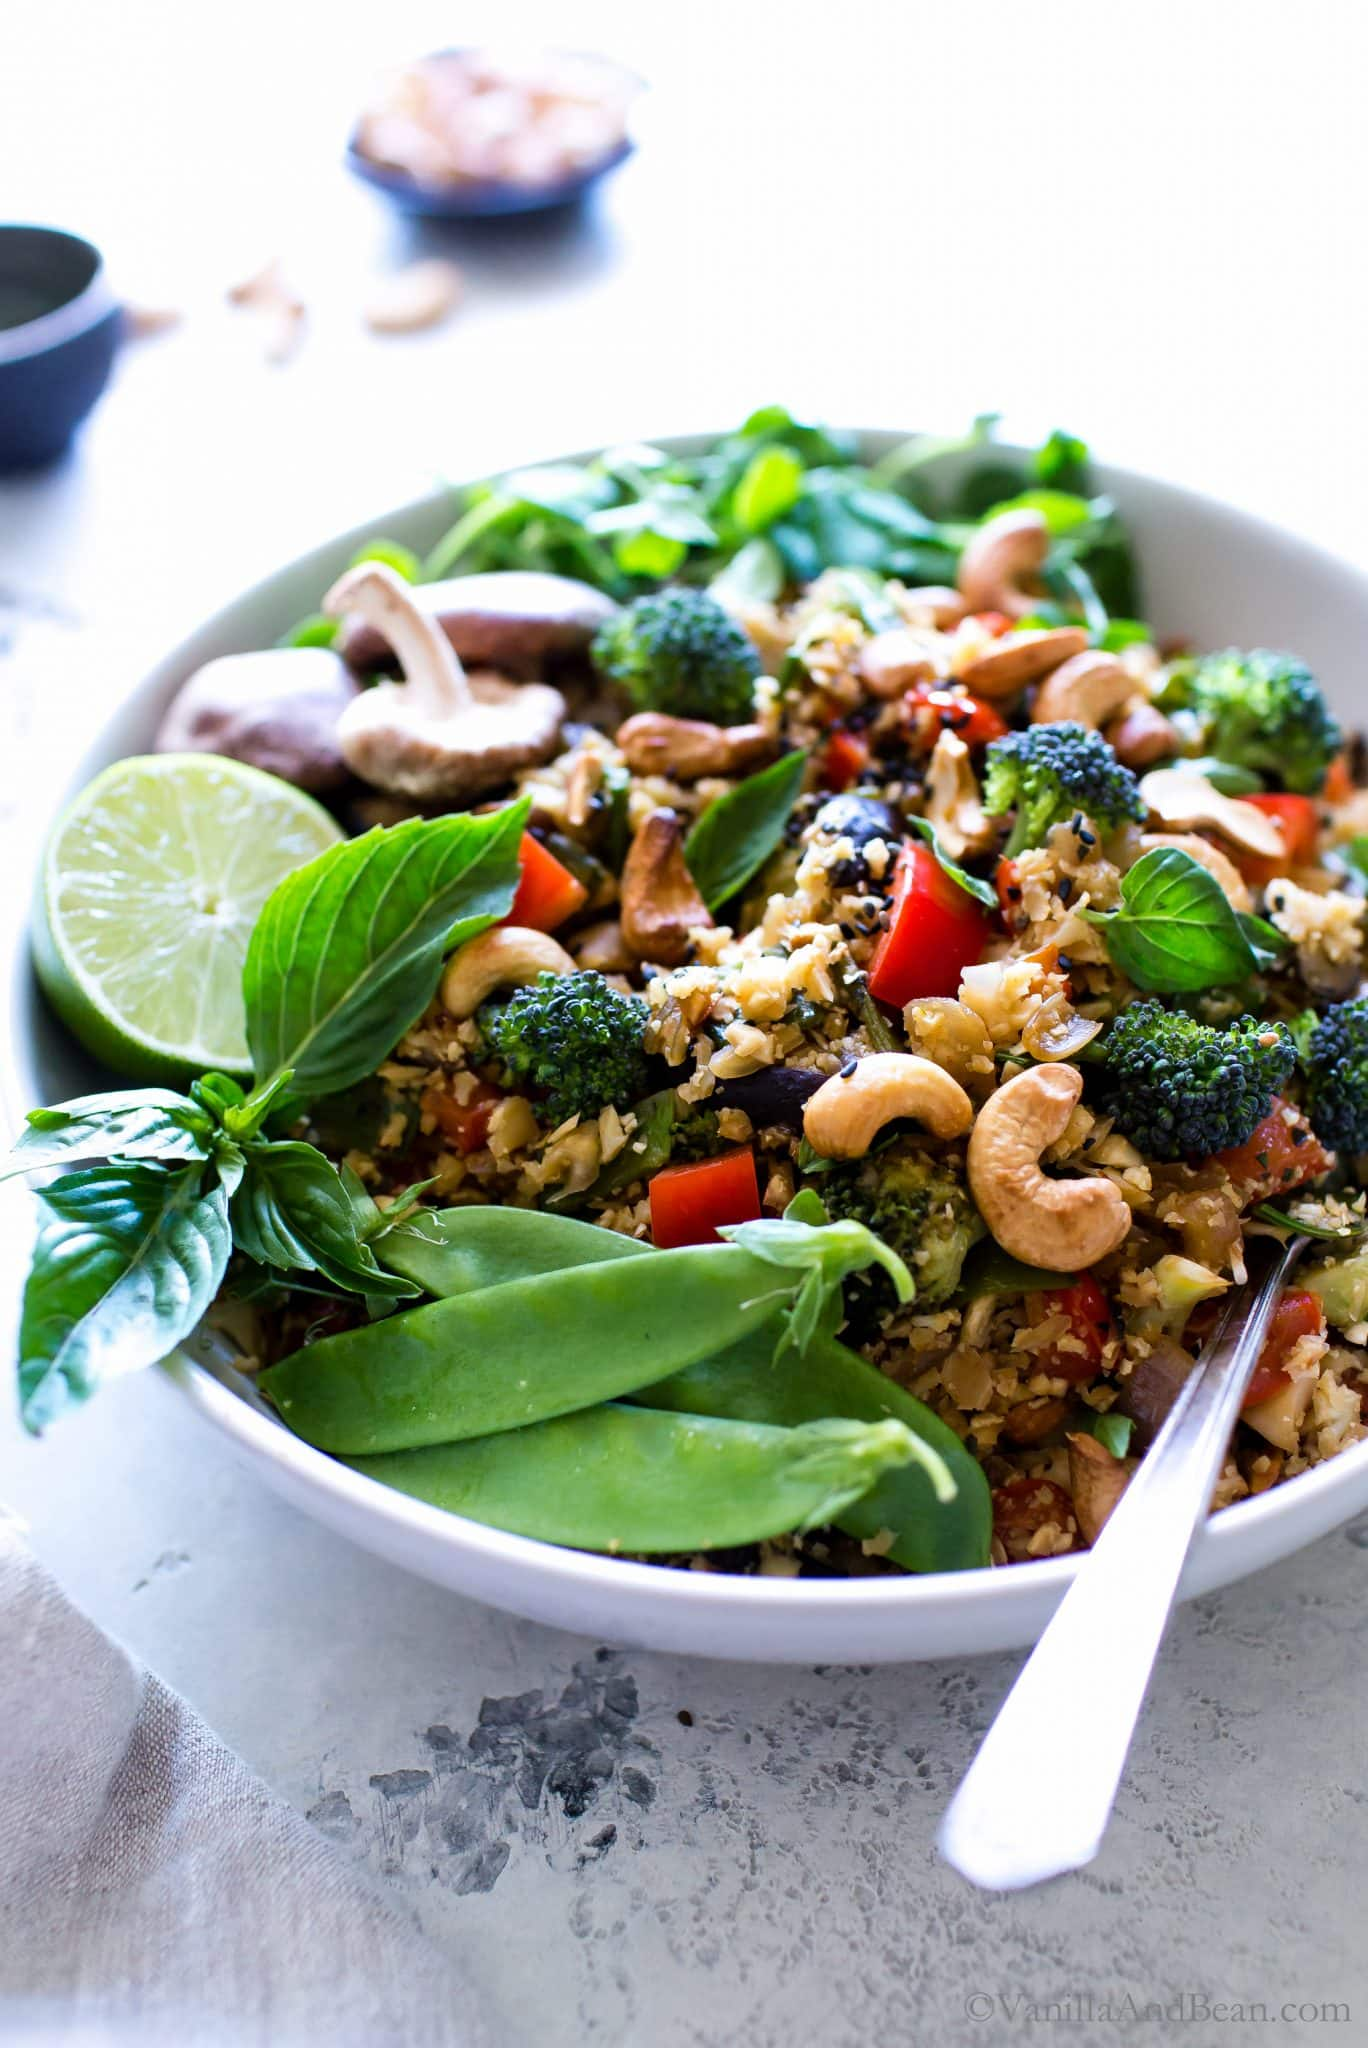 Vibrant, nourishing, and packed with umami flavors, Thai Vegetable Cauliflower Fried Rice with Cashews comes together with ease and makes a hearty Thai inspired dinner. Top it with an optional fried egg or prepared tofu to stretch this main further. #CauliflowerRice #PlantBased #Vegetarian #Vegan #GlutenFree